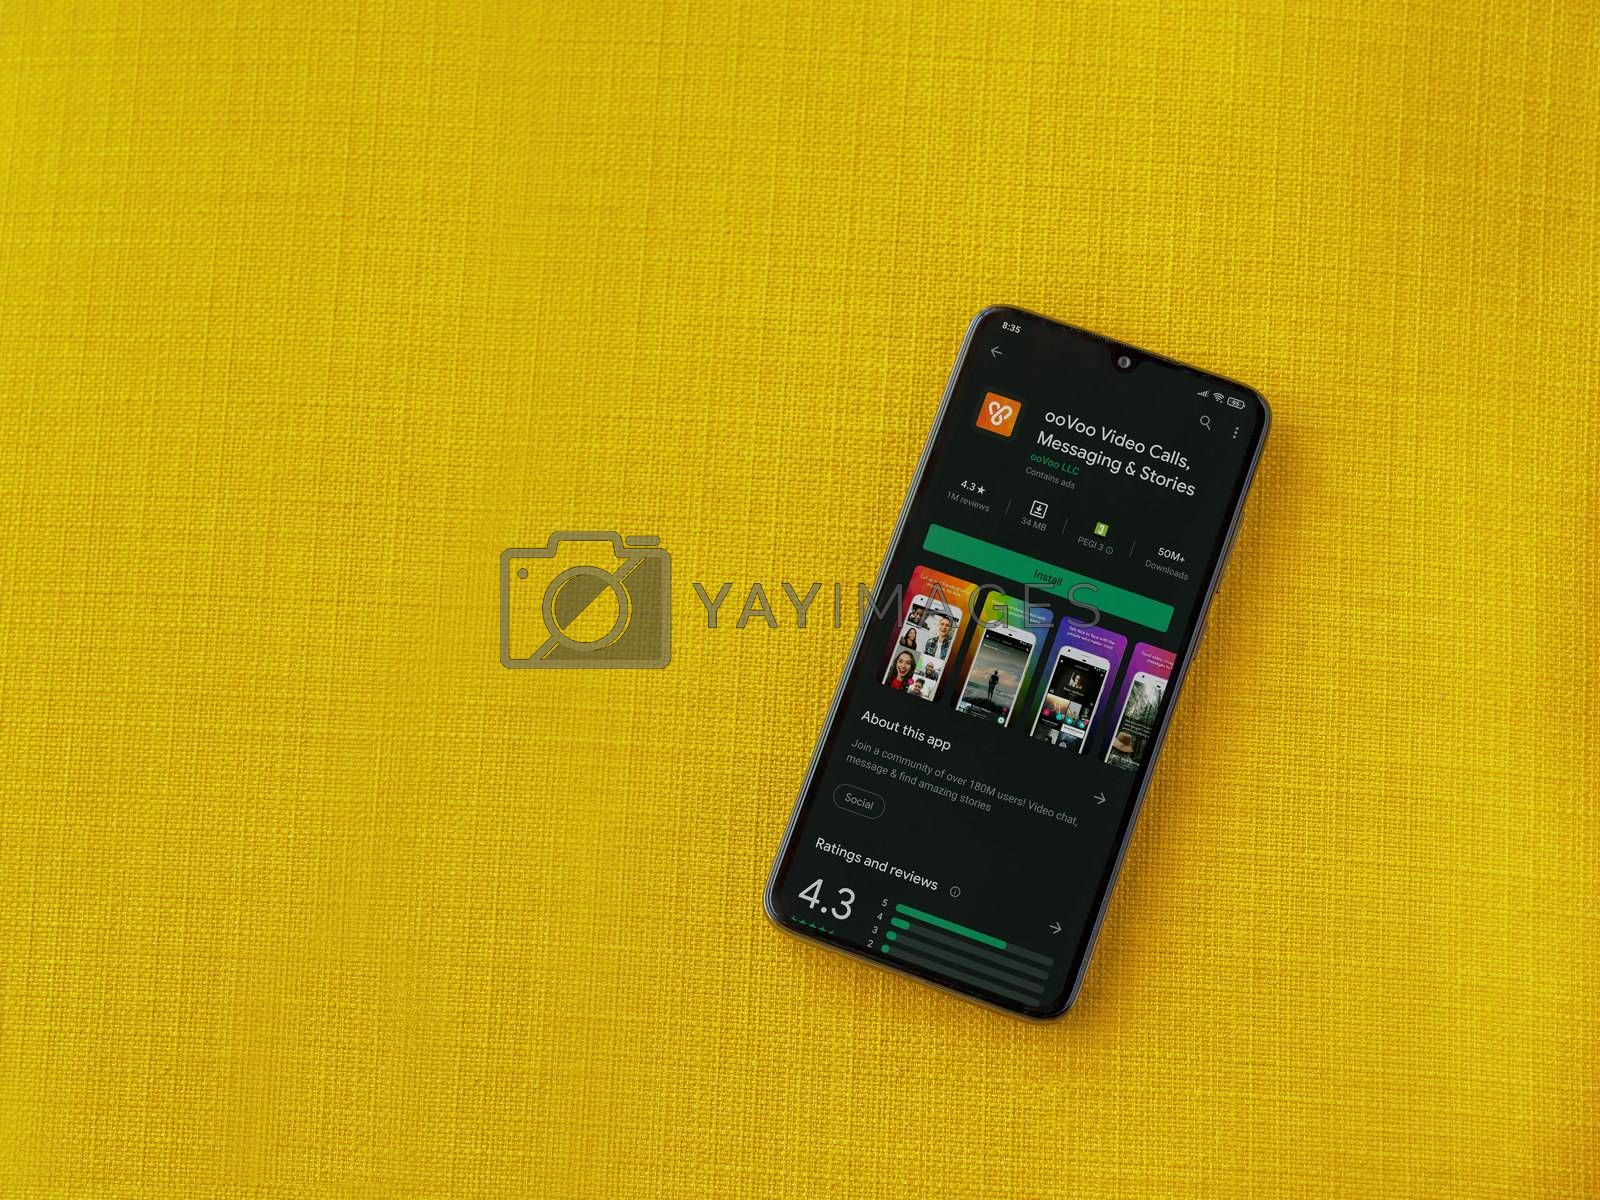 Lod, Israel - July 8, 2020: ooVoo app play store page on the display of a black mobile smartphone on a yellow fabric background. Top view flat lay with copy space.